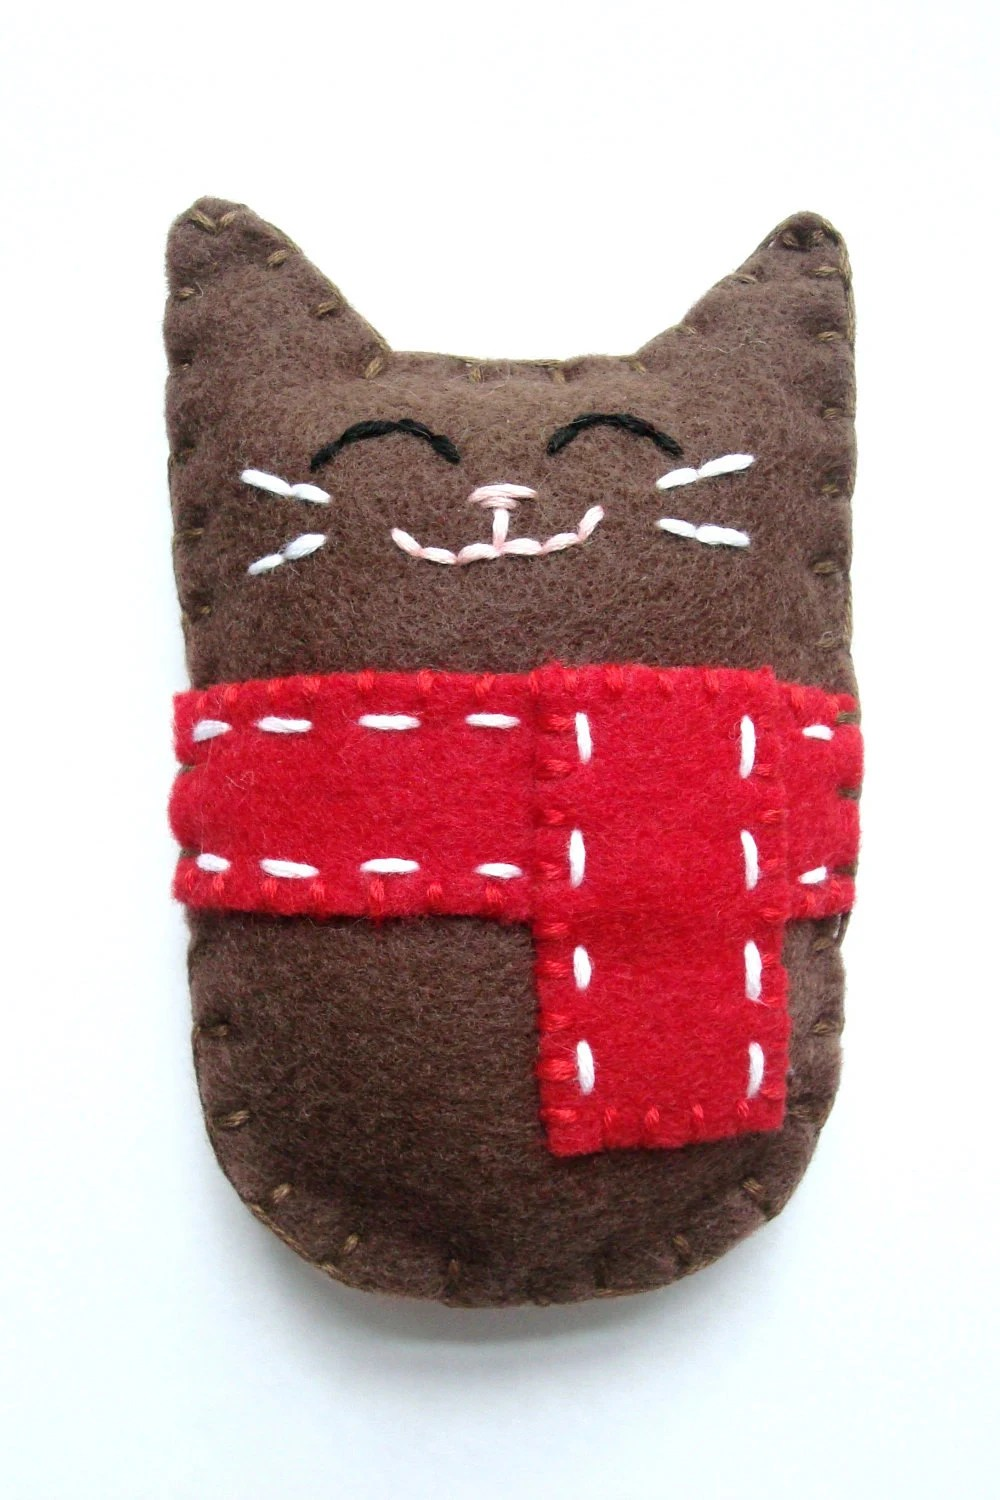 Winter Felt Cat Plush Doll Christmas Felt Animal Made to Order - AmeliaAndBrother